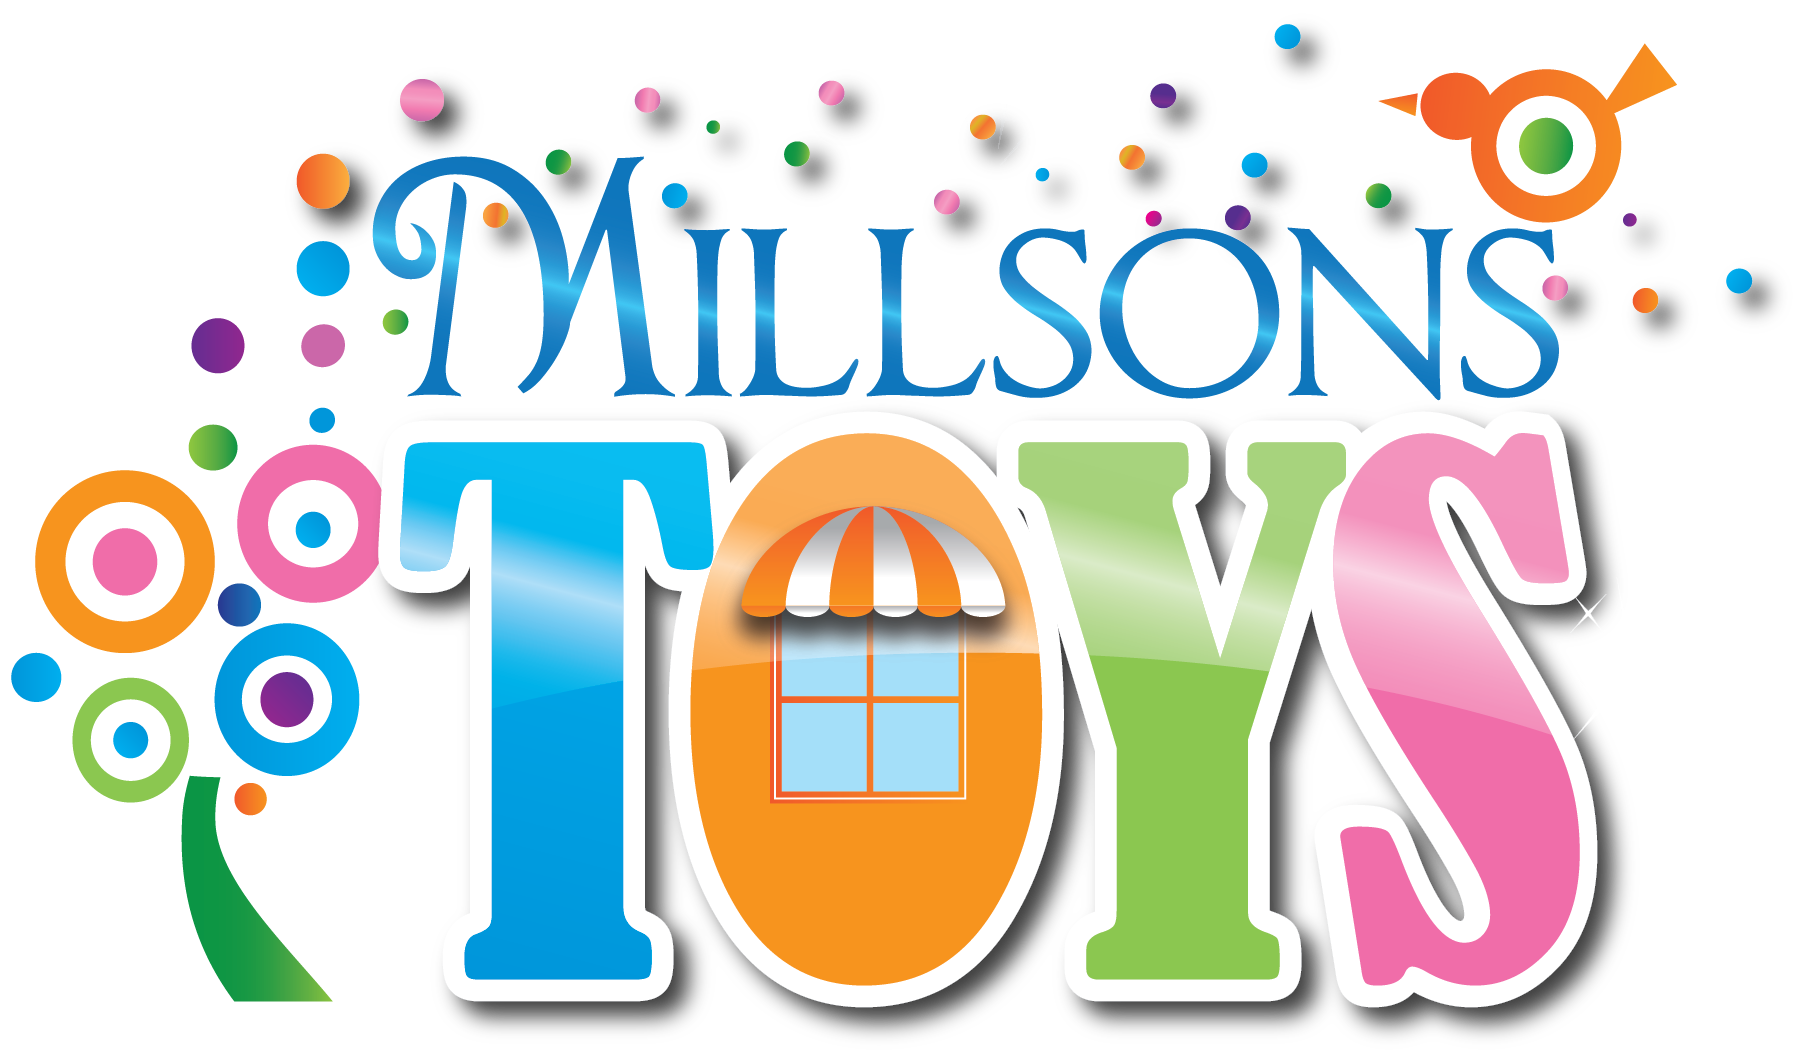 Millsons Toys logo, links to the homepage